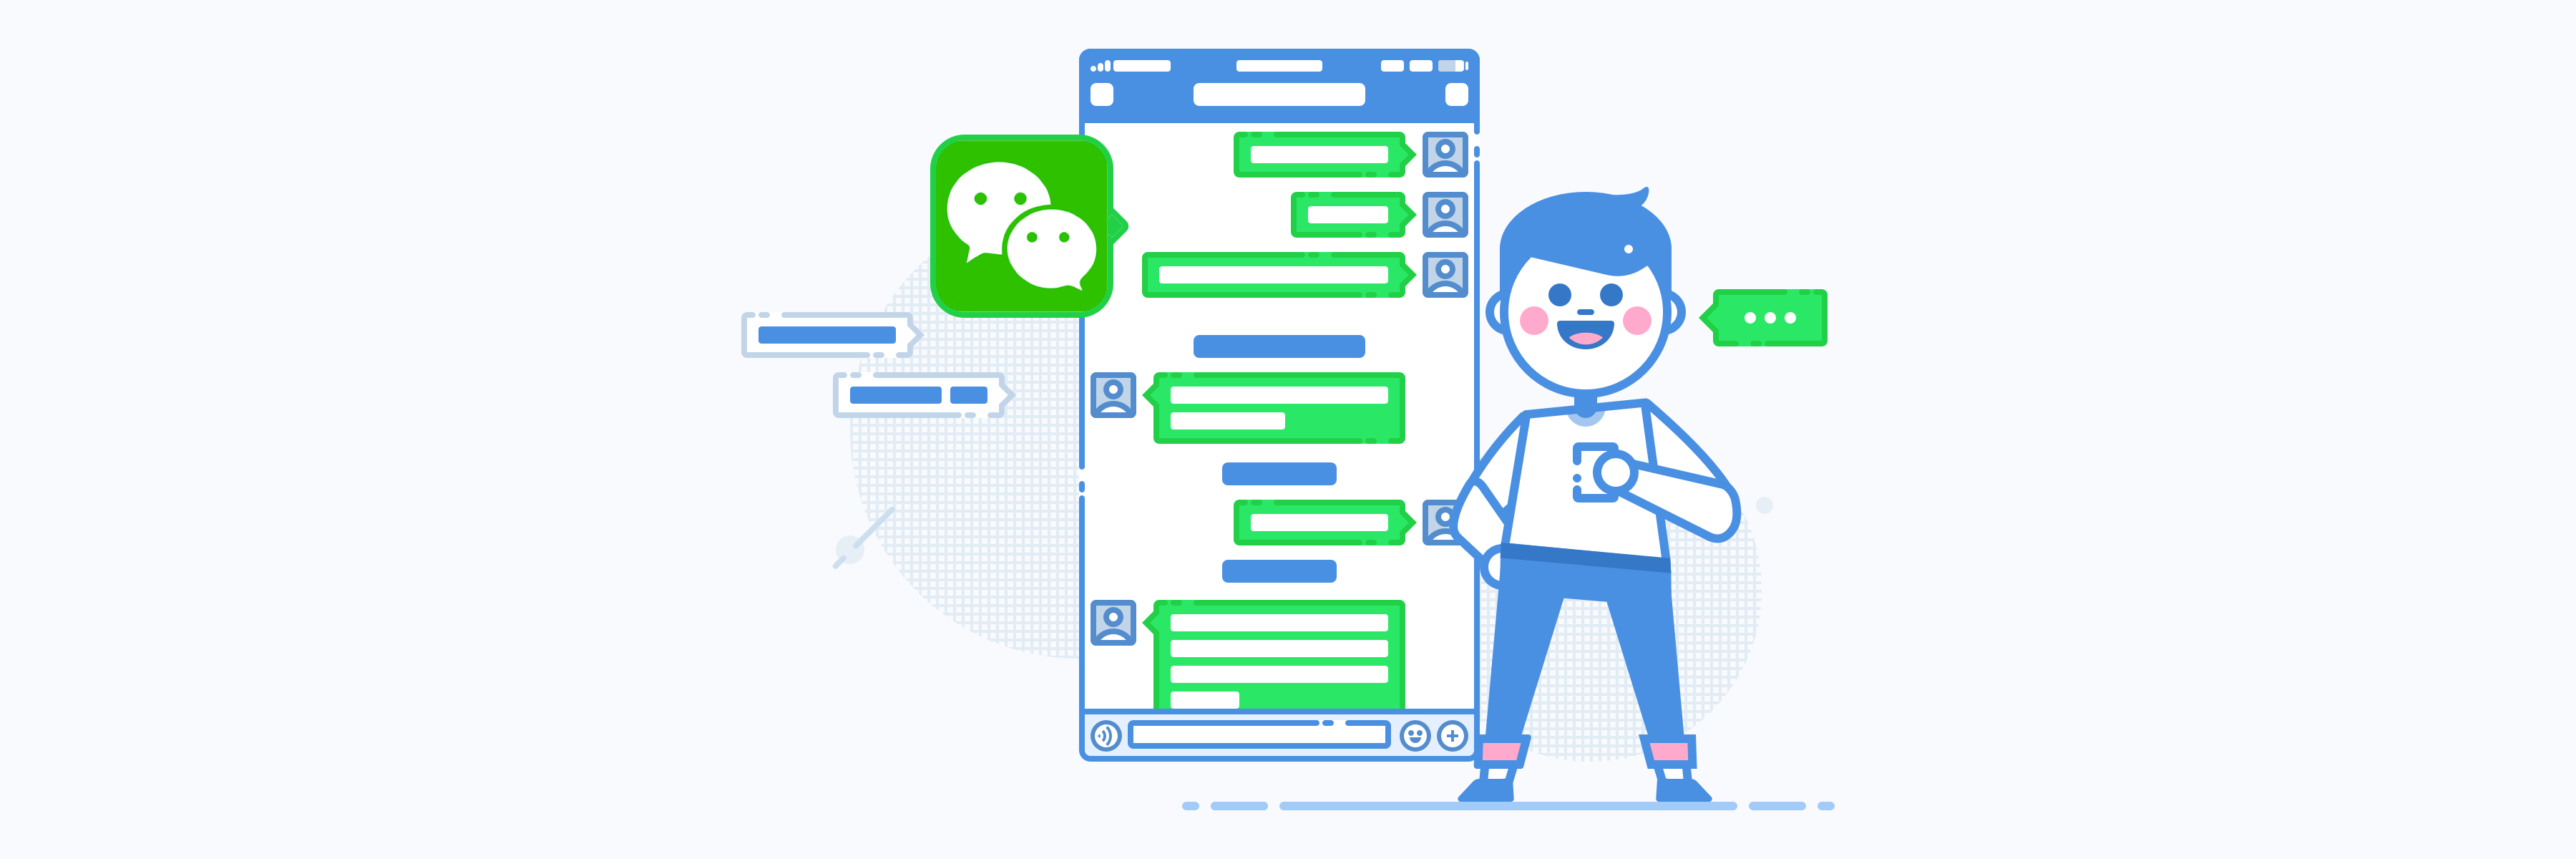 What Makes Wechat So Successful Wechat Is One Of The Most Used Apps On By Shan Shen Muzli Design Inspiration